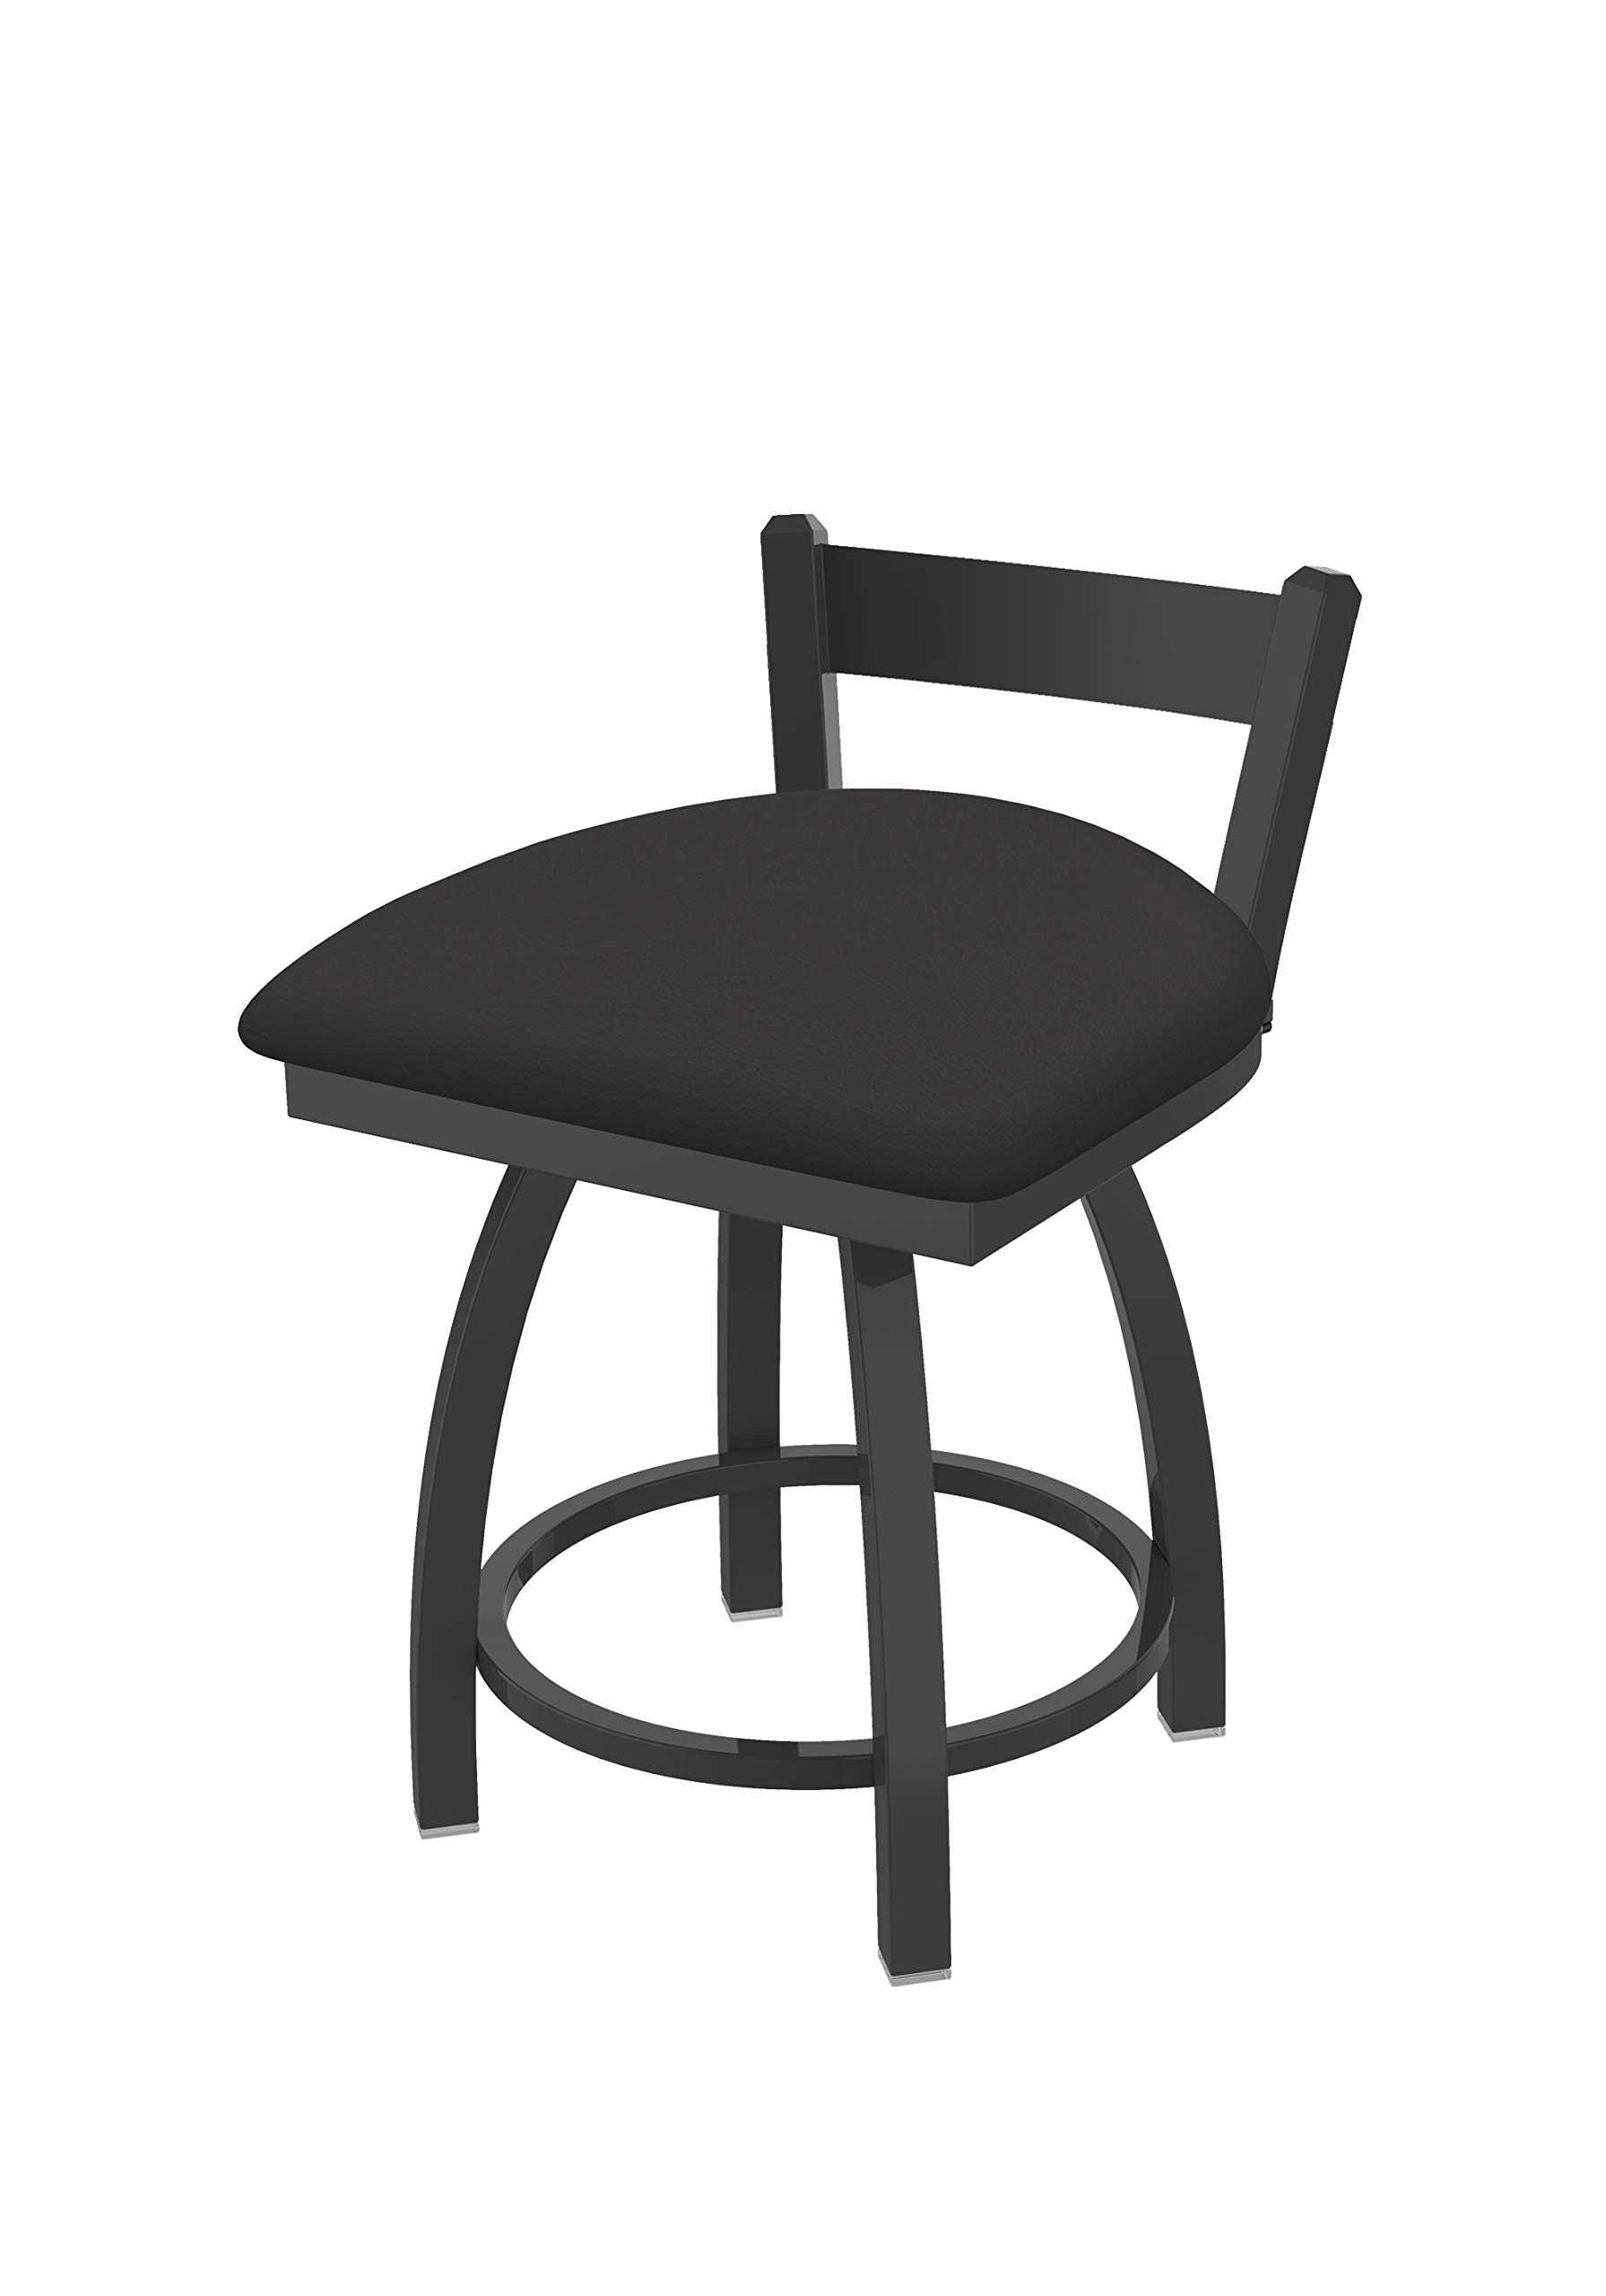 Holland Bar Stool Co. 82118PW008 821 Catalina 18'' Low Back Swivel Vanity Pewter Finish and Canter Iron Seat Bar Stool